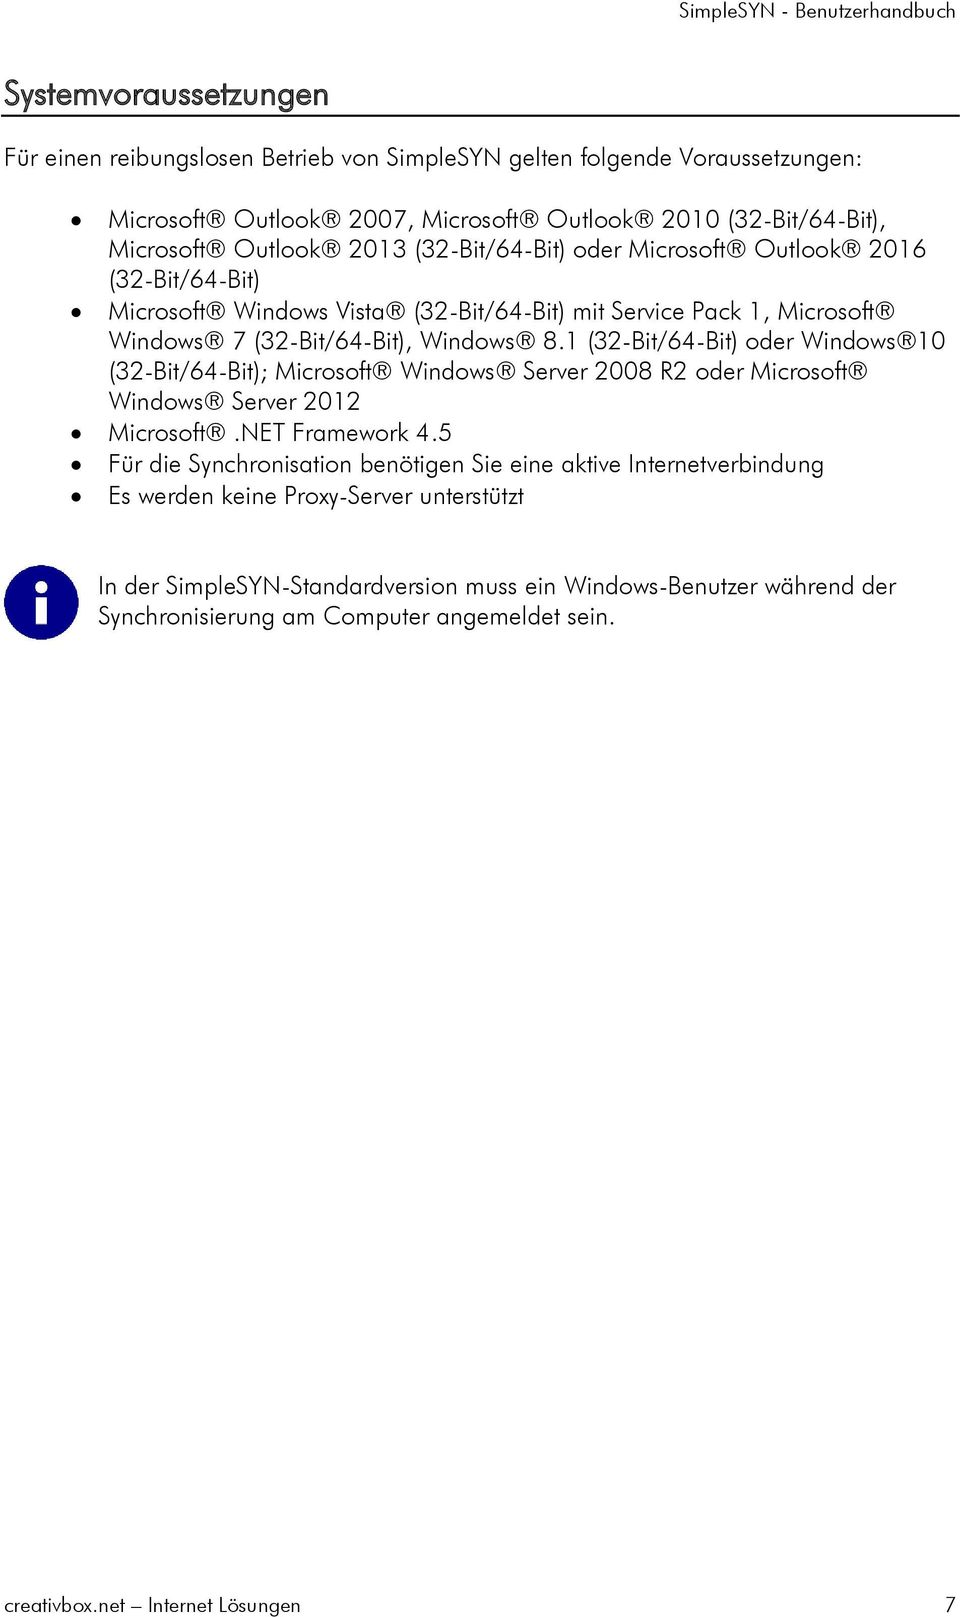 1 (32-Bit/64-Bit) oder Windows 10 (32-Bit/64-Bit); Microsoft Windows Server 2008 R2 oder Microsoft Windows Server 2012 Microsoft.NET Framework 4.